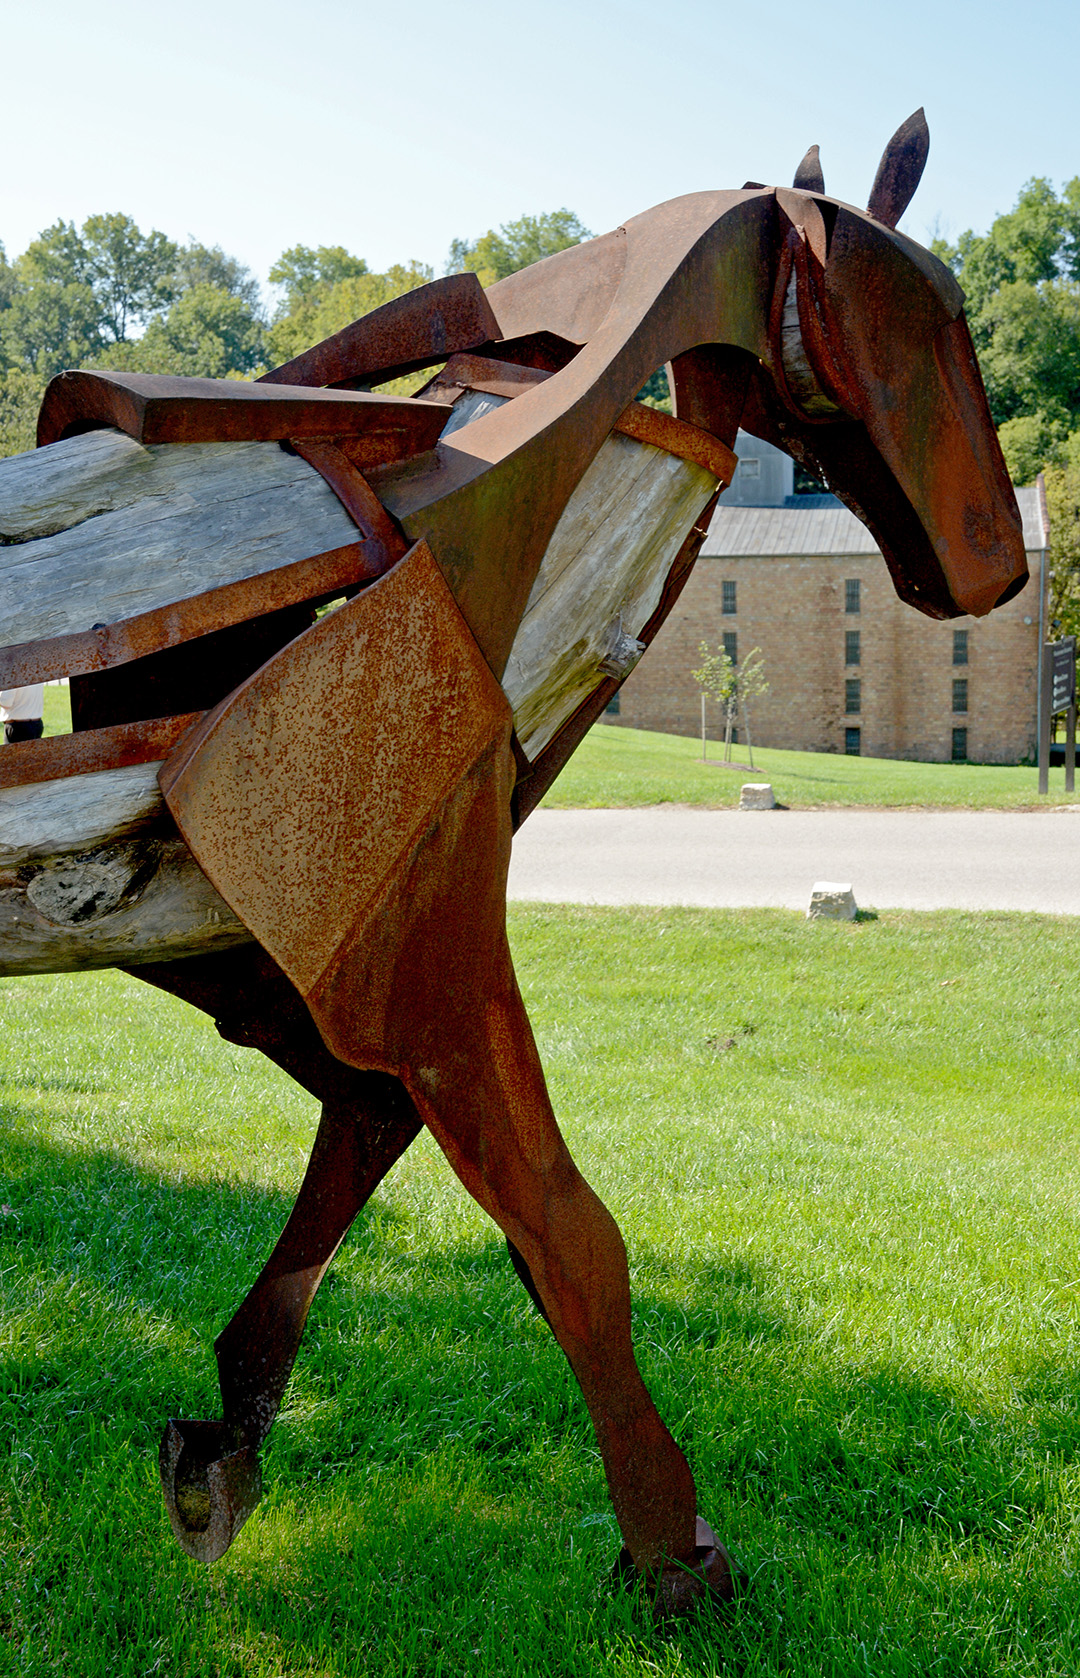 Horse sculpture outside Woodford Reserve Distillery.